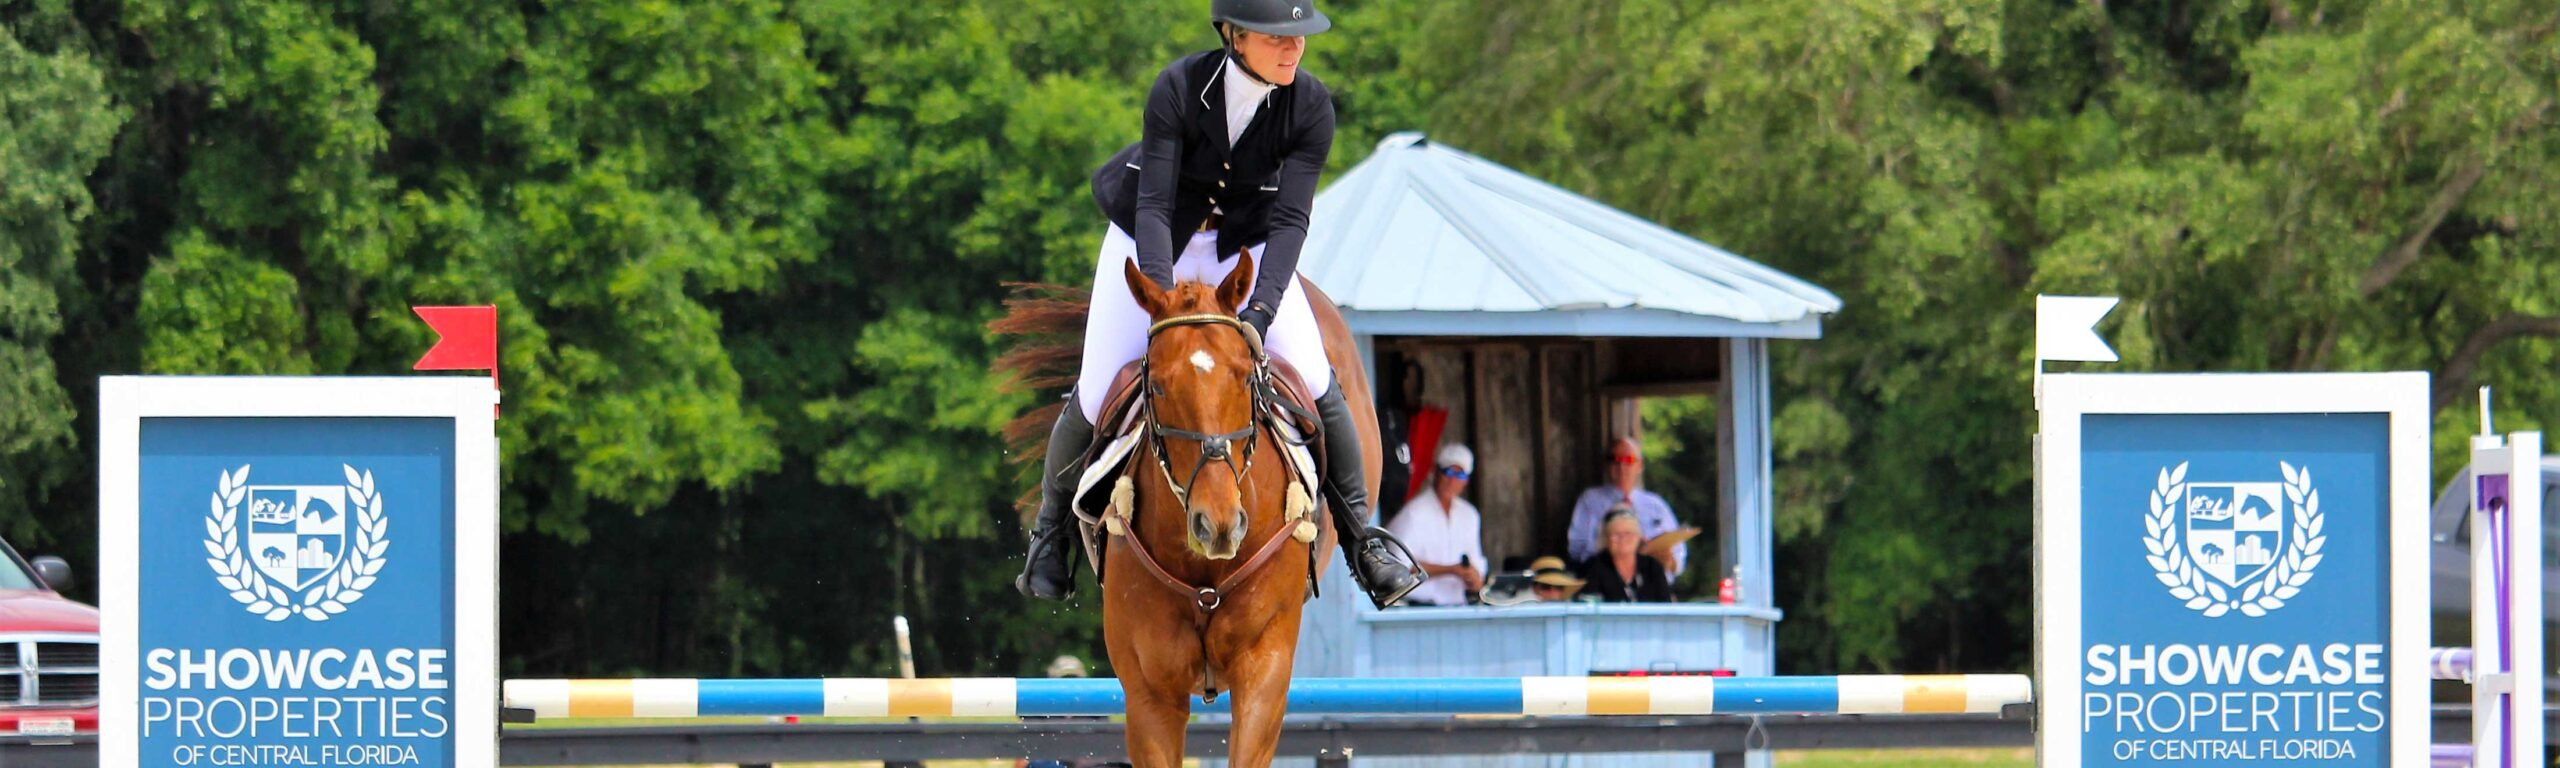 A competitor horse and rider jumping over the Showcase Properties at the Florida Horse Park.